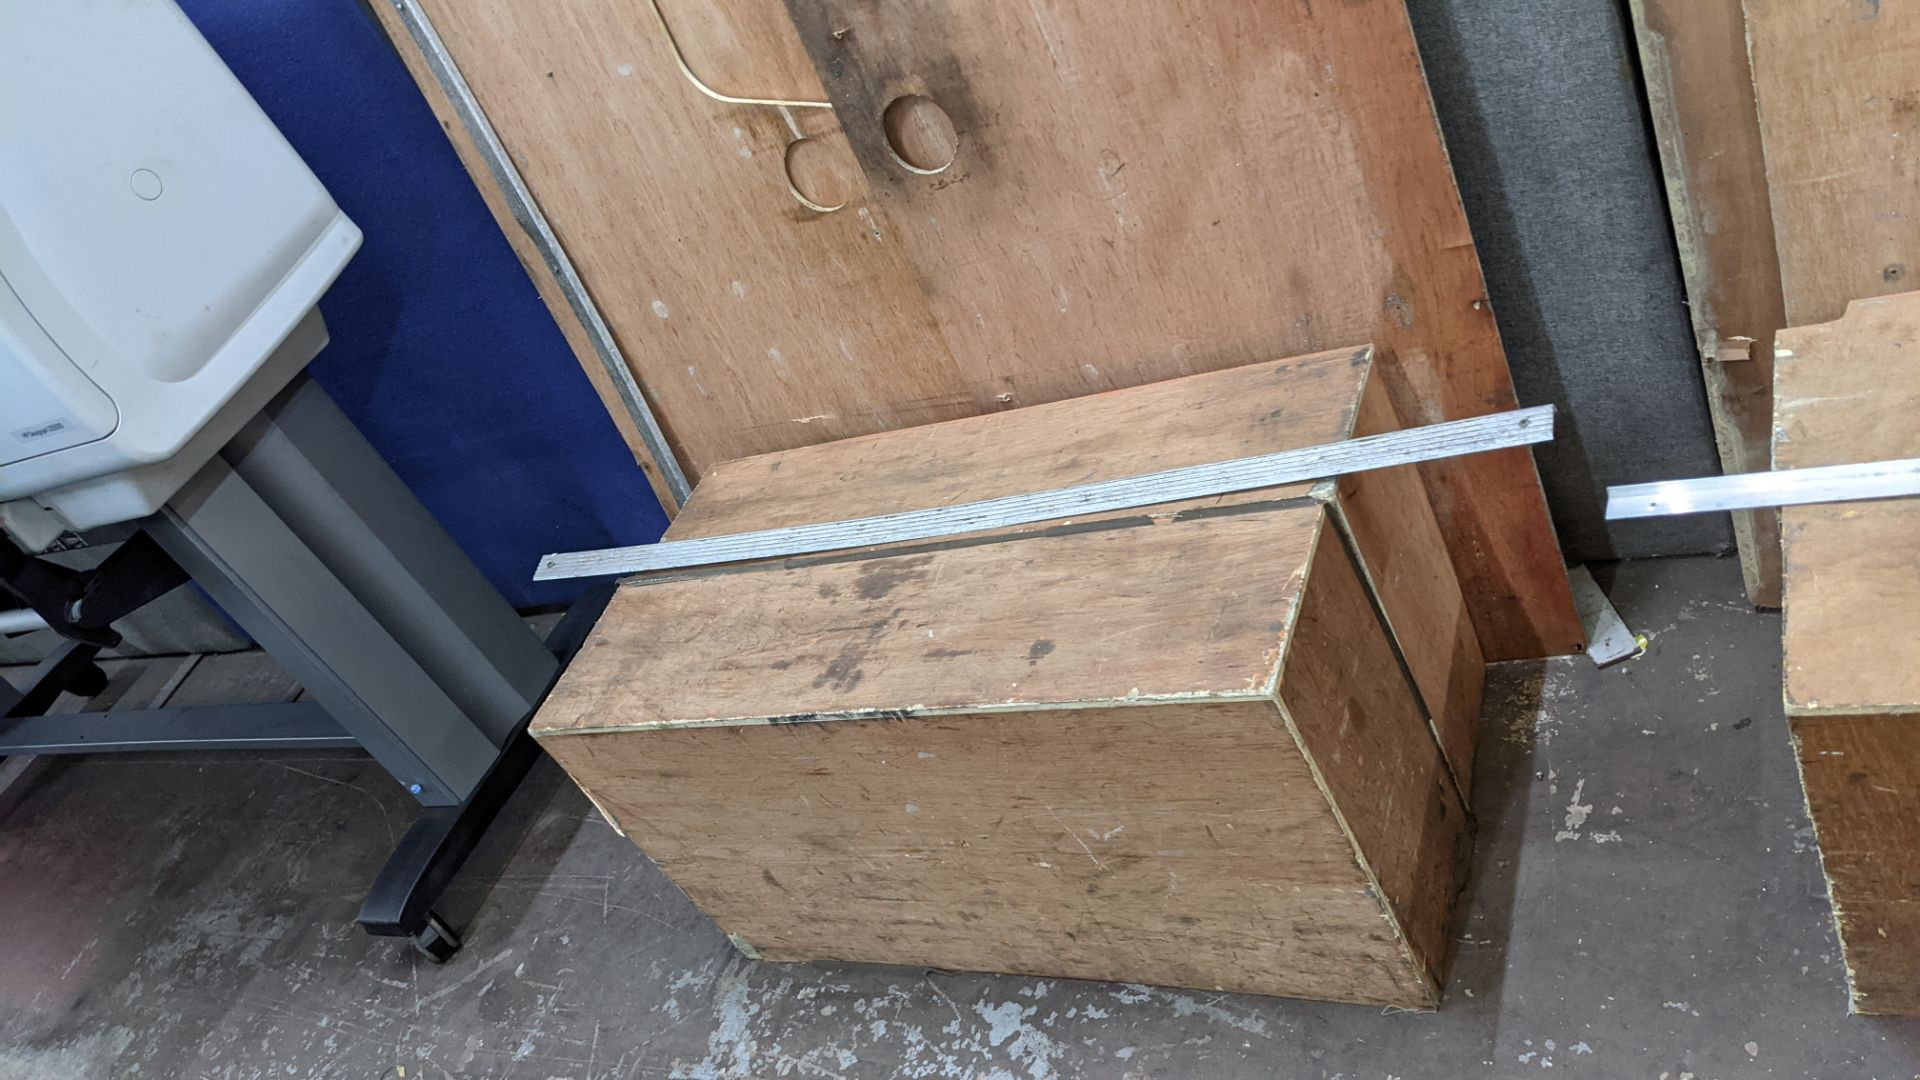 Floor ply lining as fitted to Peugeot Boxer L4 panel van - Image 8 of 8